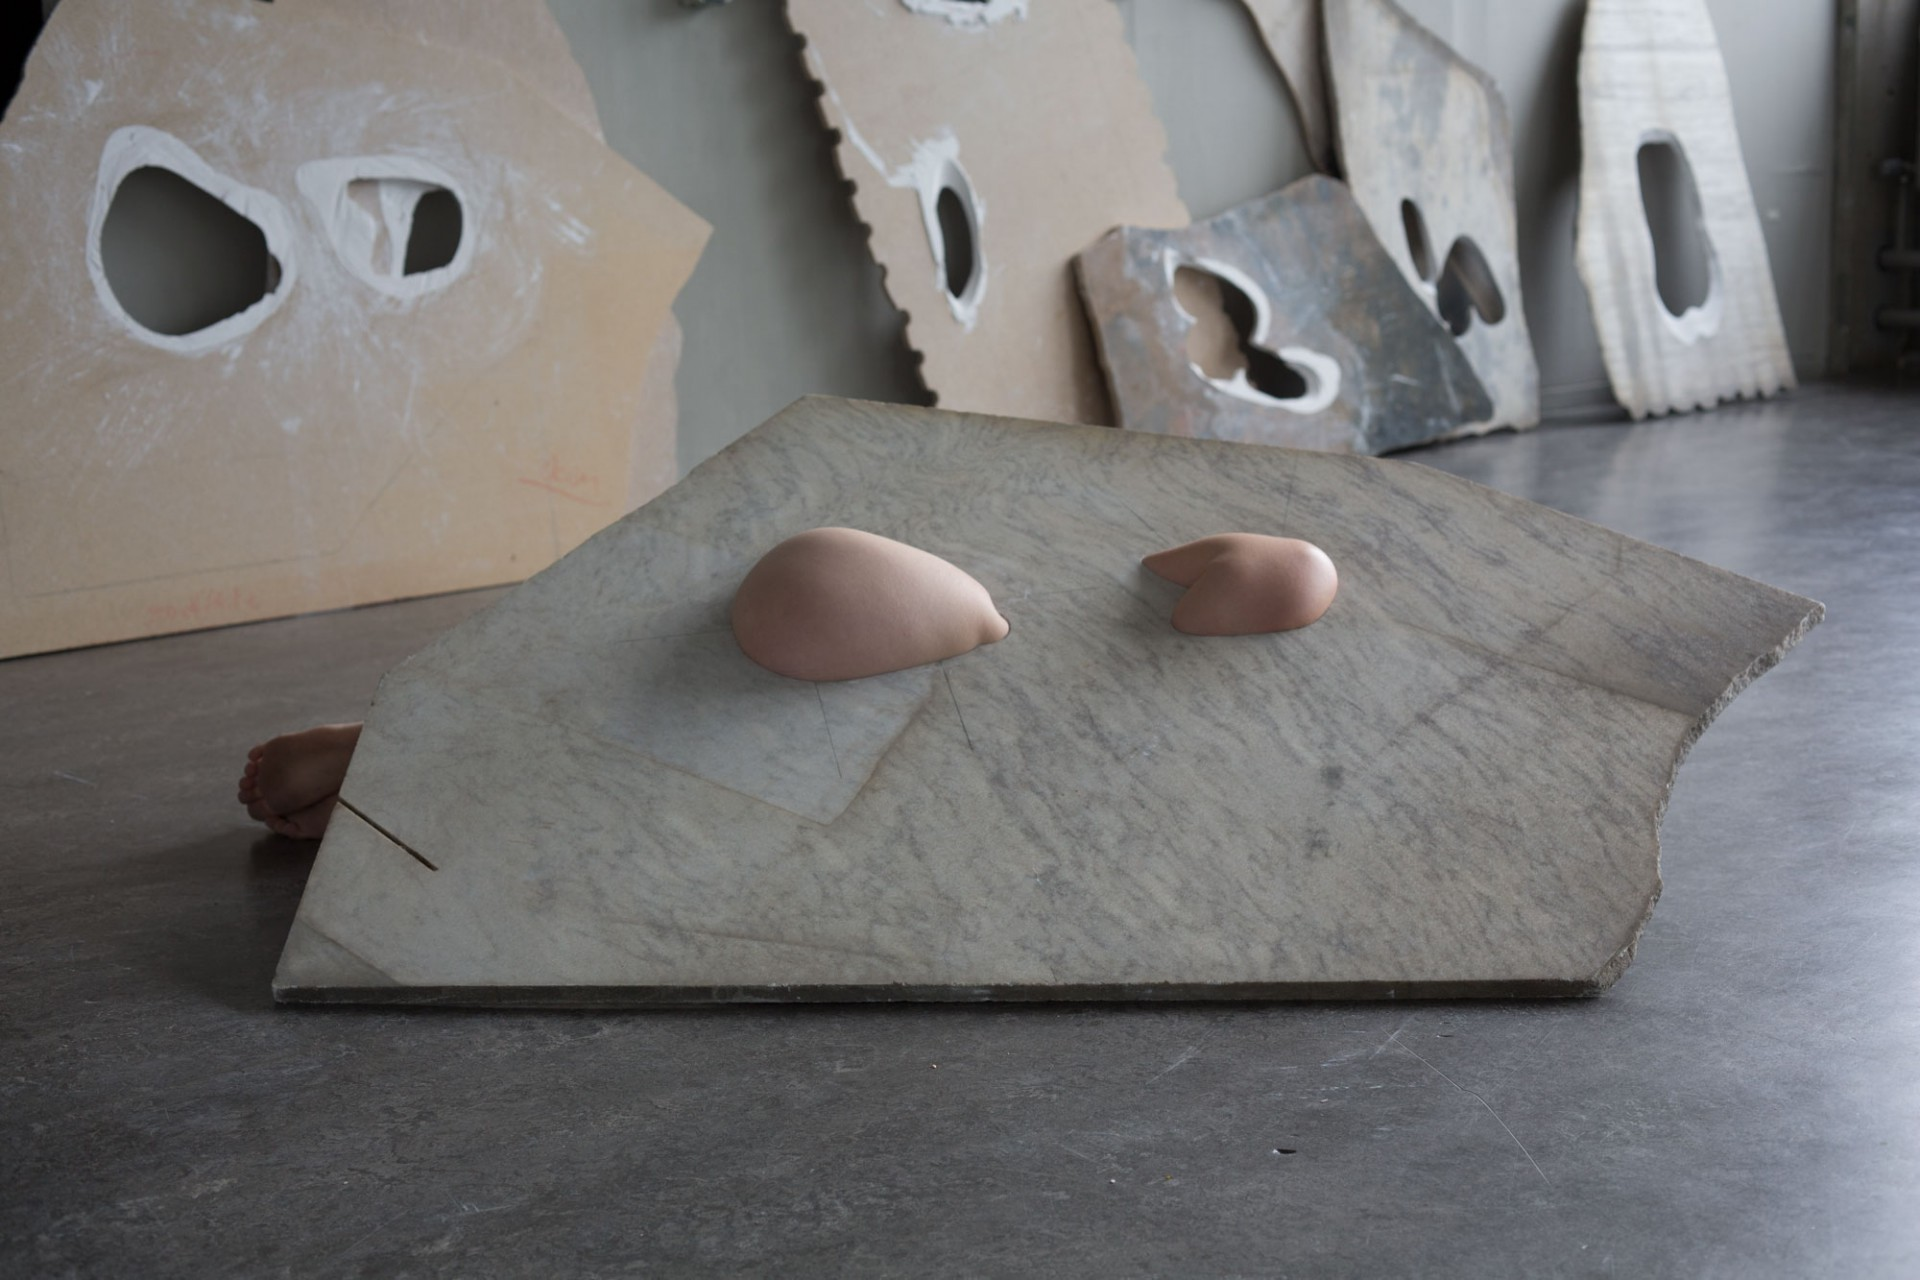 Creative Marble and People Sculptures